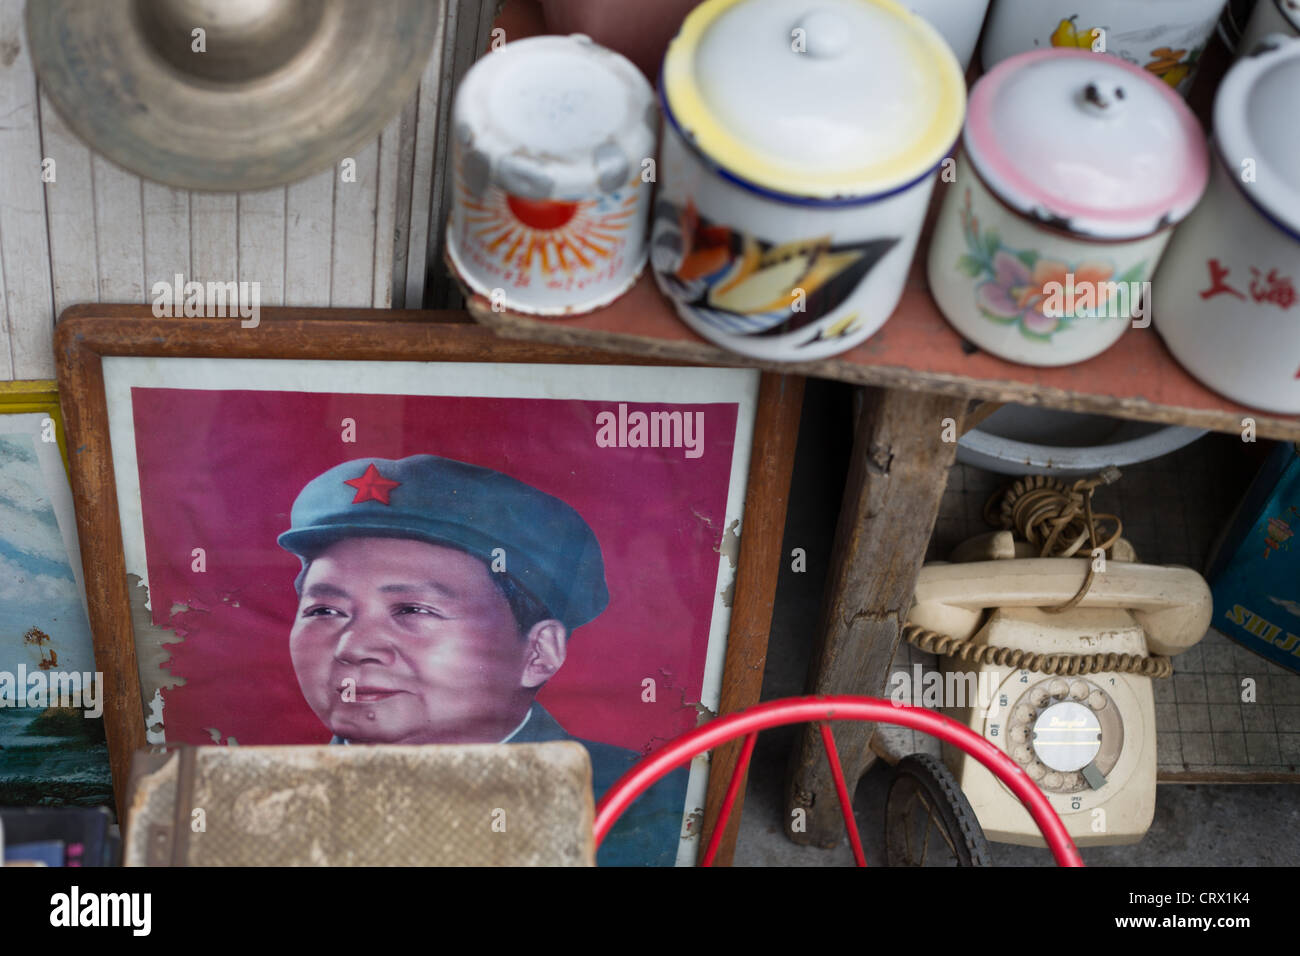 Chairman Mao memorabilia on sale in Dongtai Road Antique Market in Shanghai, China. - Stock Image